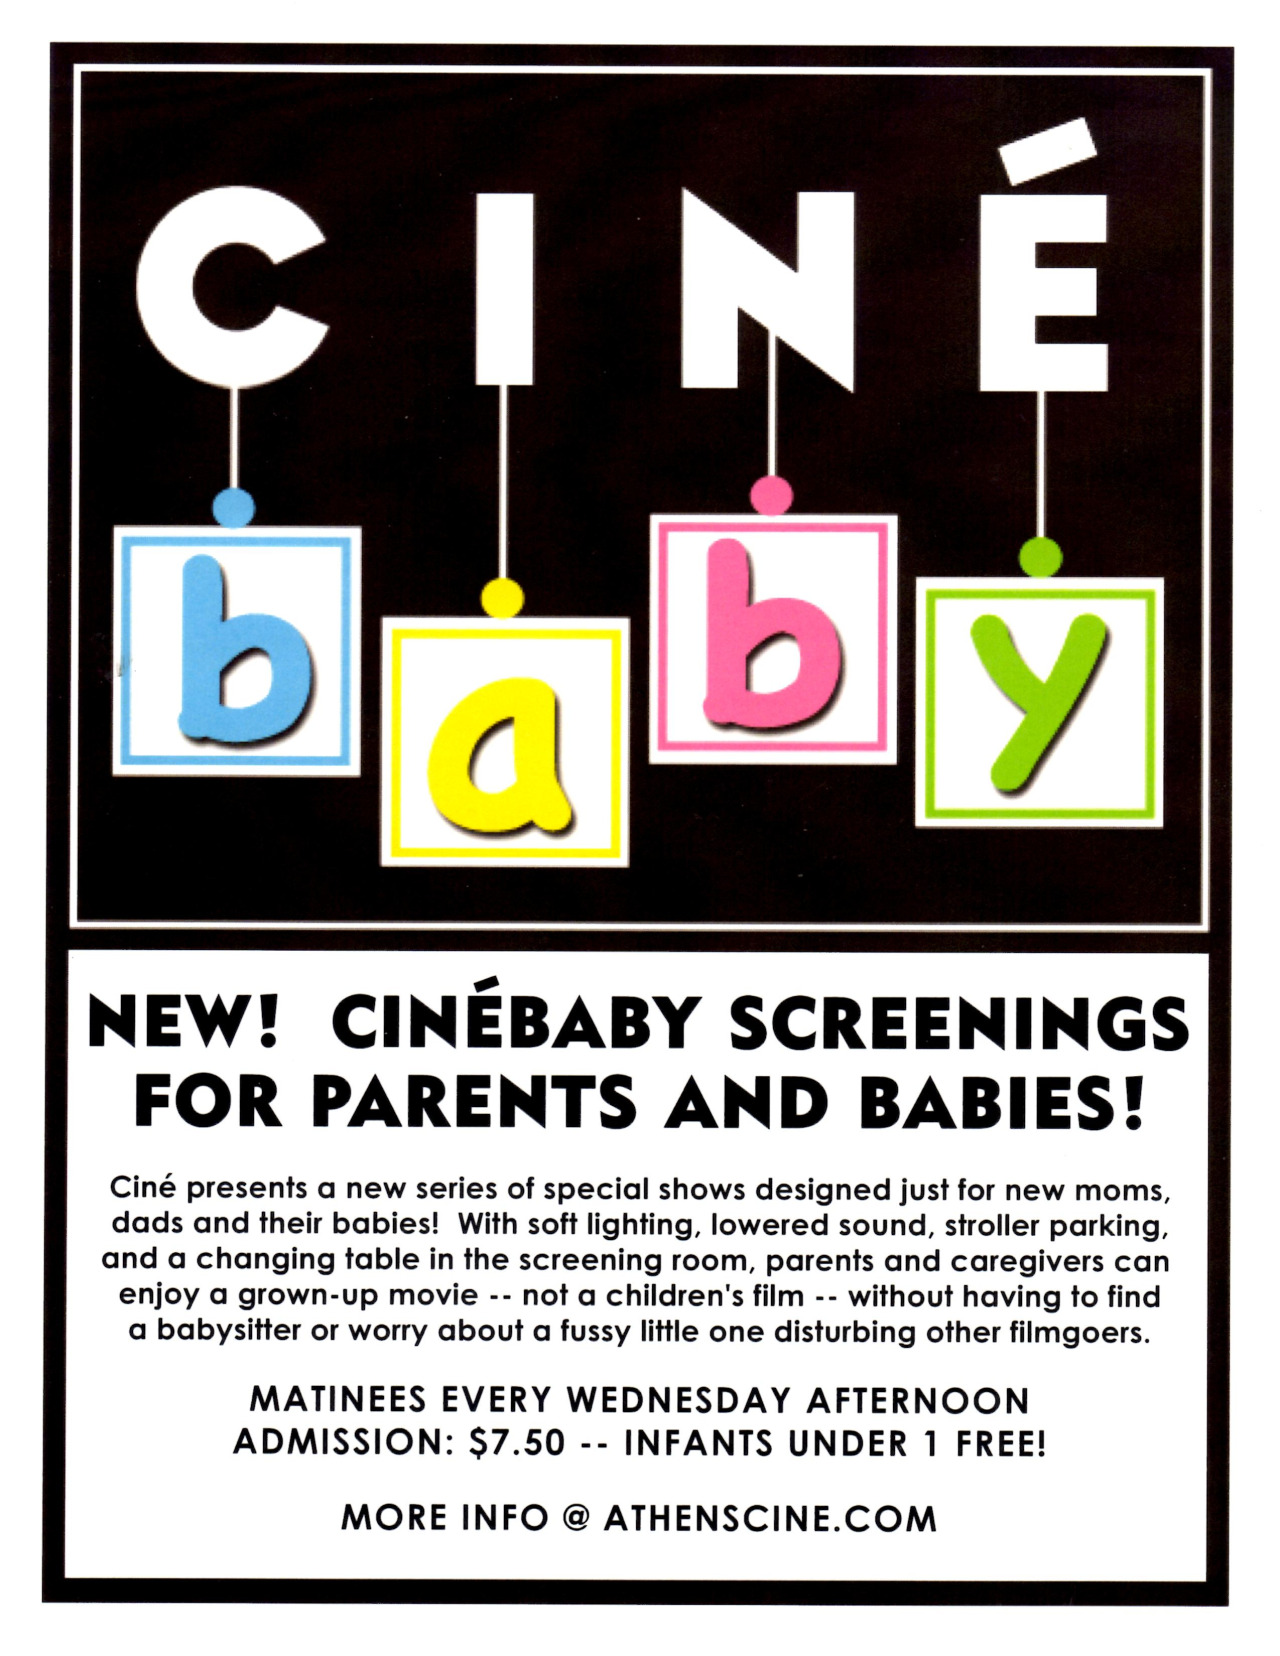 Take your babies to the movies!  Every Wednesday afternoon, Ciné is offering two matinee screenings of grown-up films in a baby-friendly setting.    At CinéBaby, new moms and dads and their babies can enjoy a movie with soft lighting, lowered sound, stroller parking, and a changing table right in the screening room. No worrying about a fussy little one disturbing other filmgoers. No babysitter necessary!       MATINEES EVERY WEDNESDAY AFTERNOON    ADMISSION: $7.50 – INFANTS UNDER 1 FREE!    SHOWING THIS WEEK -   WED 6/18:  3:00p - THE IMMIGRANT -and- 3:15p - CHEF